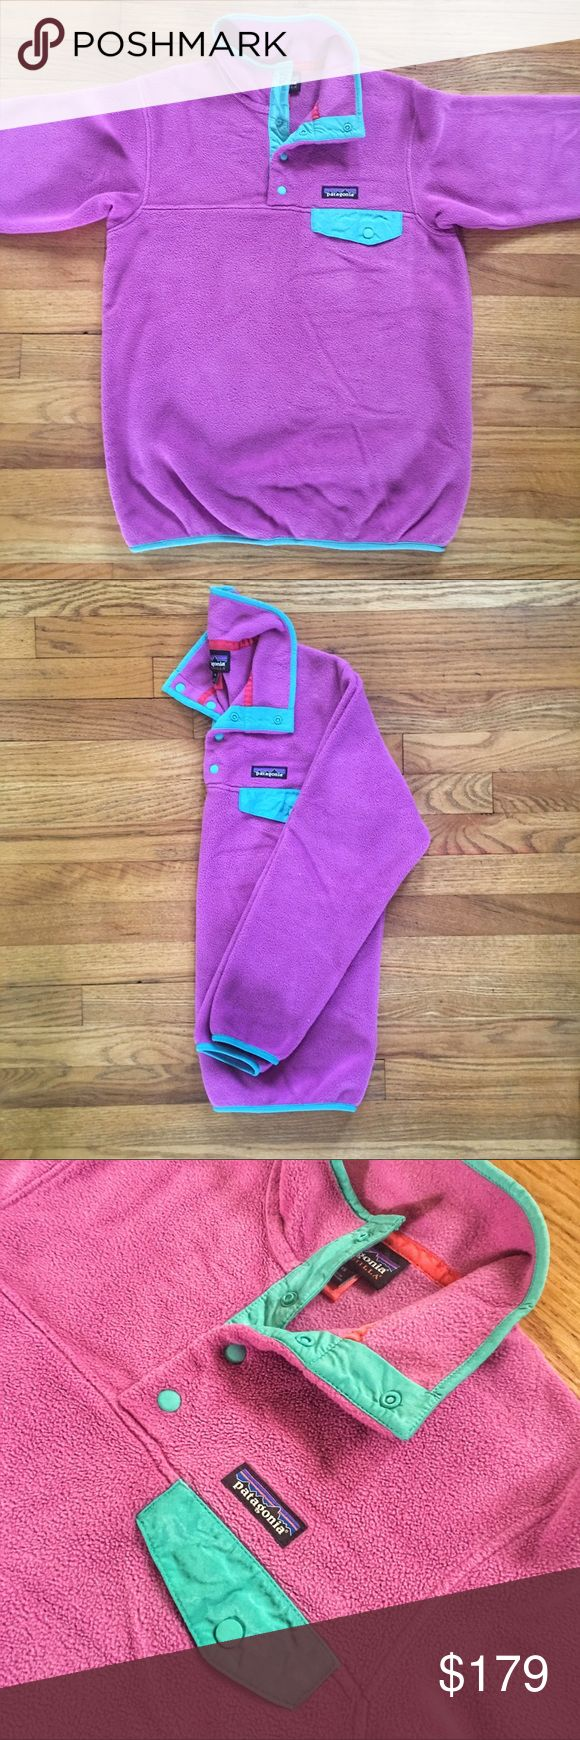 NWOT VNTG Patagonia Snap-T Synchilla Jacket NWOT Vintage Patagonia Snap-T Synchilla Fleece pullover jacket.  Size is XS.  Colors are a purplish/pink and teal.  New without tags. See something you like but it's not here next week? We sell in store and across multiple platforms, so items go quick! If you're interested, act on it! Patagonia Jackets & Coats